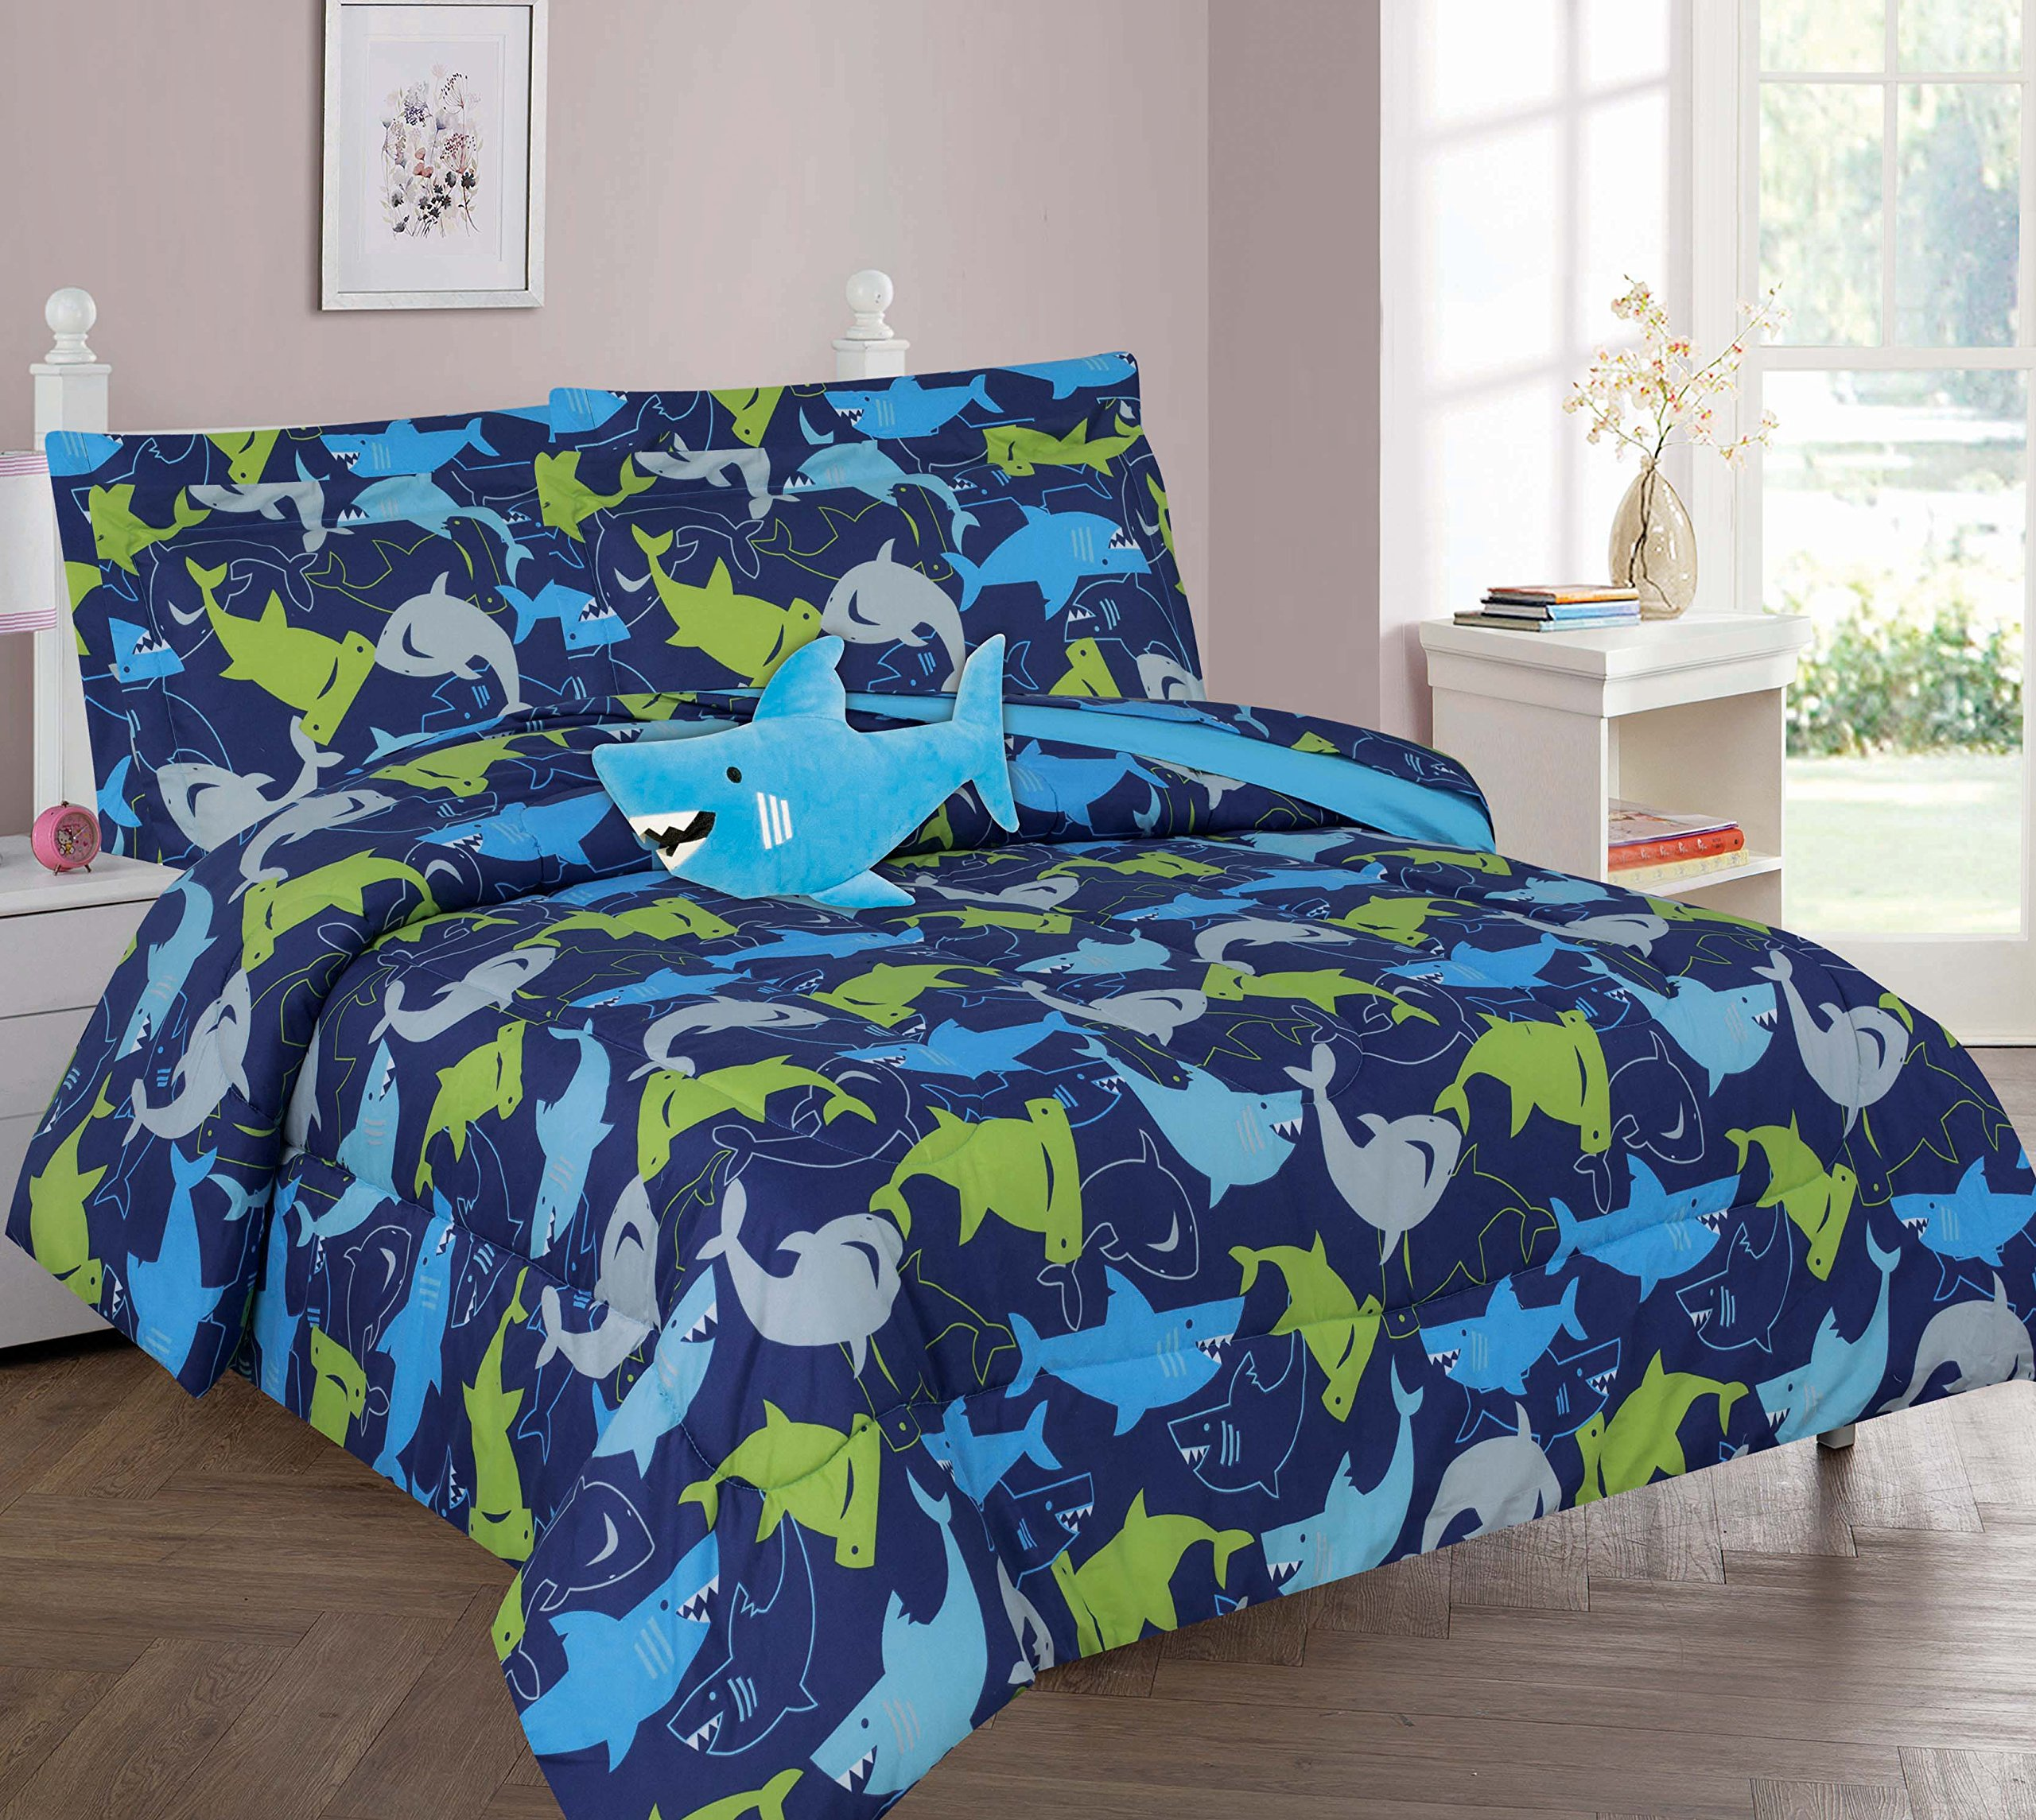 Golden Linens Full size 8 pieces Reversible Printed Lime Green, Blue, Navy Blue and grey Shark Microfiber Kids Bed In Bag Bedding Comforter with sheets and pillow cases